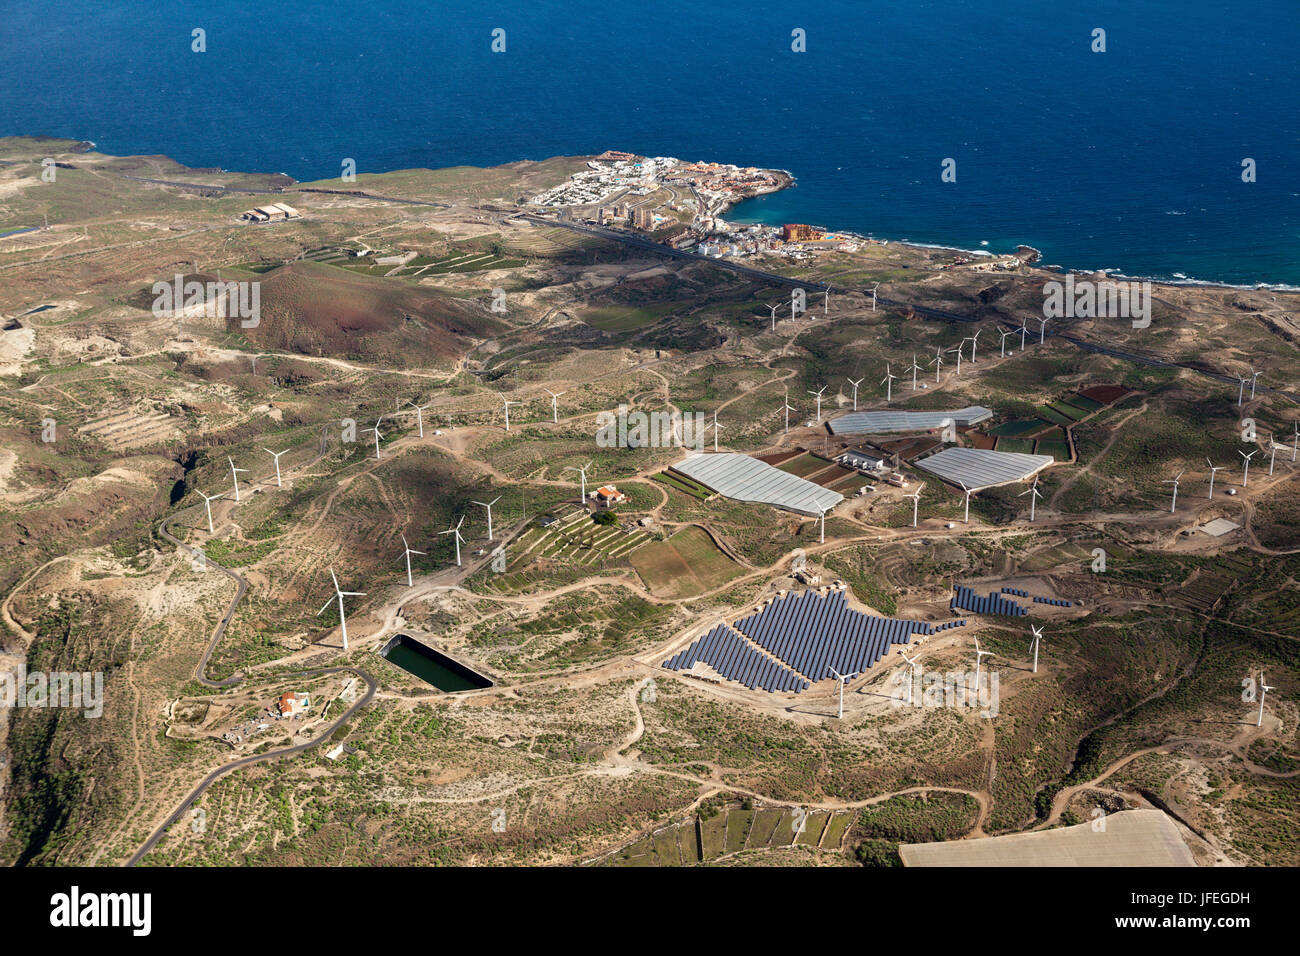 Aerial shot, solar installations and wind power stations, Tenerife, Spain - Stock Image